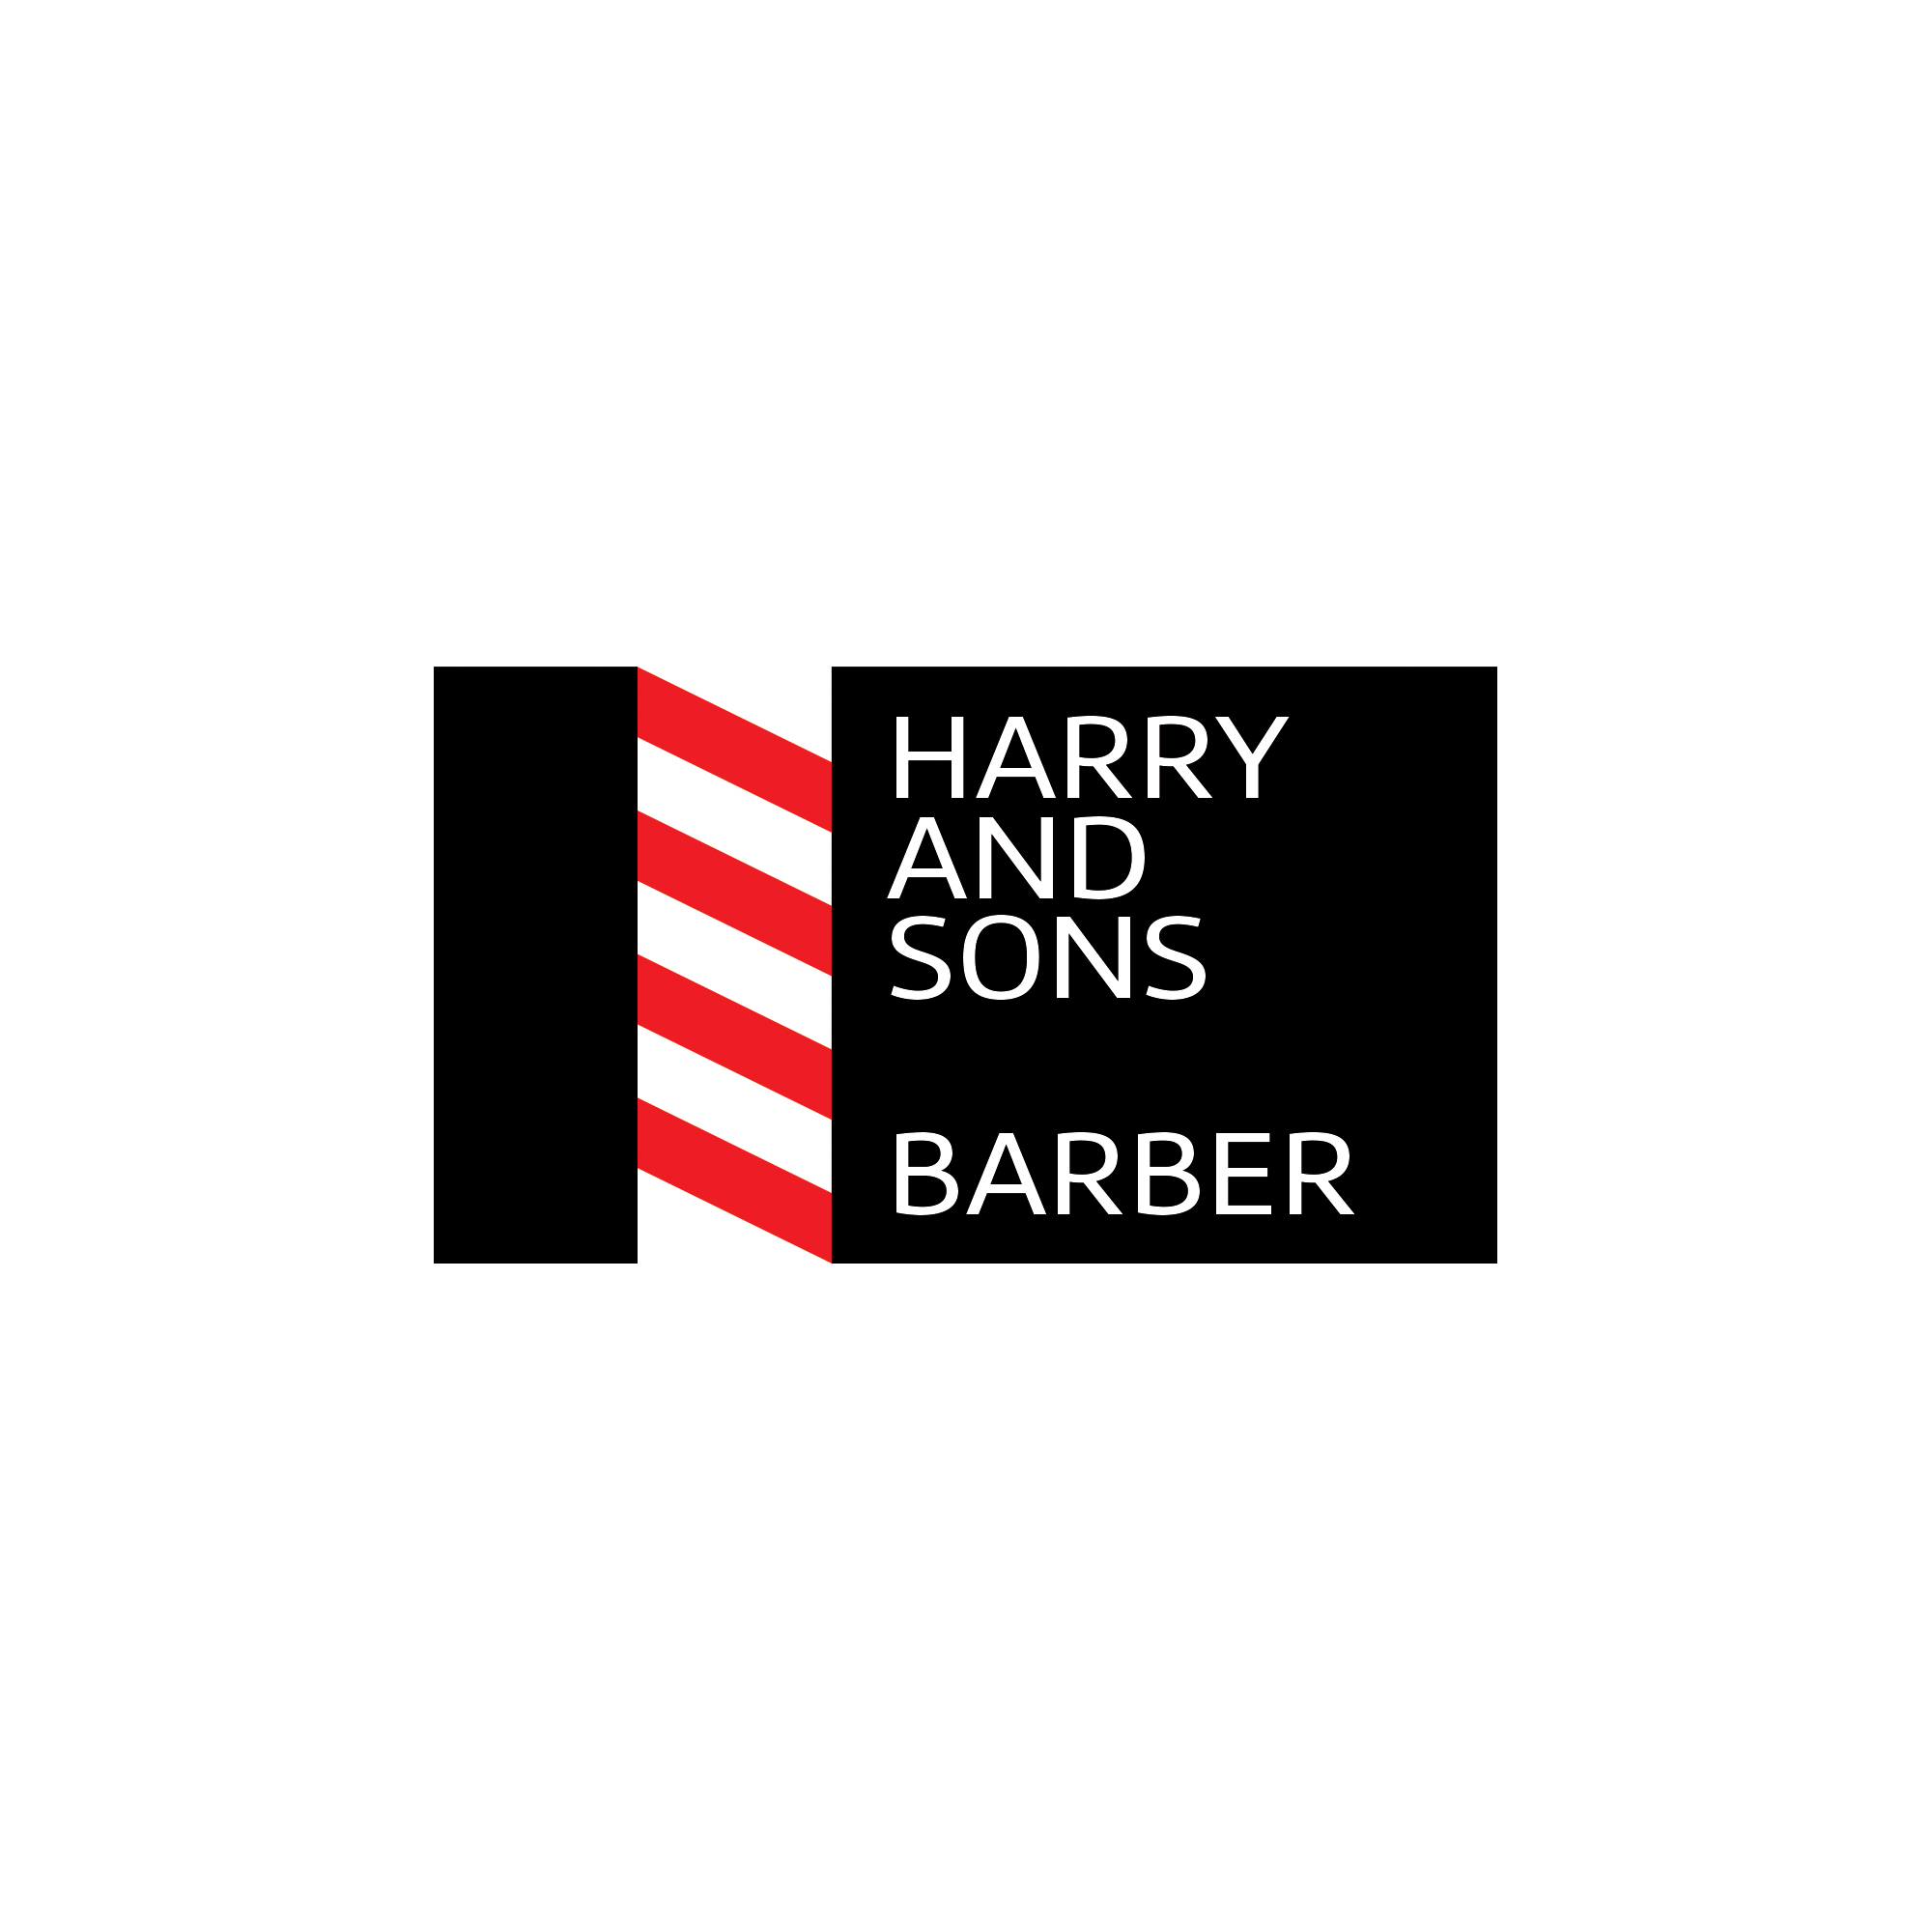 Logo Design by bildix - Entry No. 177 in the Logo Design Contest Captivating Logo Design for Harry and Sons Barber.